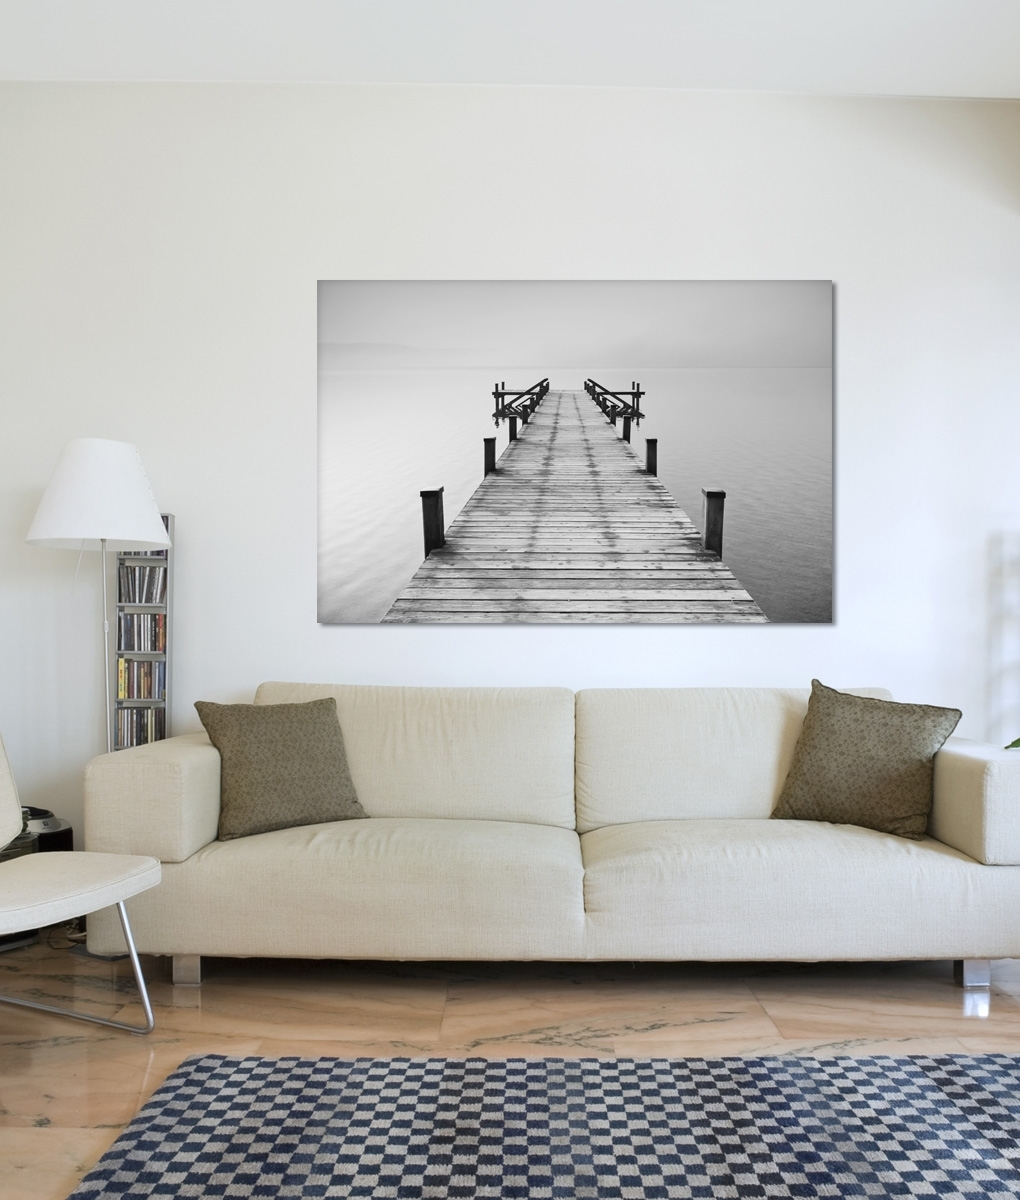 B&w Jetty Canvas Print | Framingland Pertaining To Most Recently Released Jetty Canvas Wall Art (View 3 of 15)